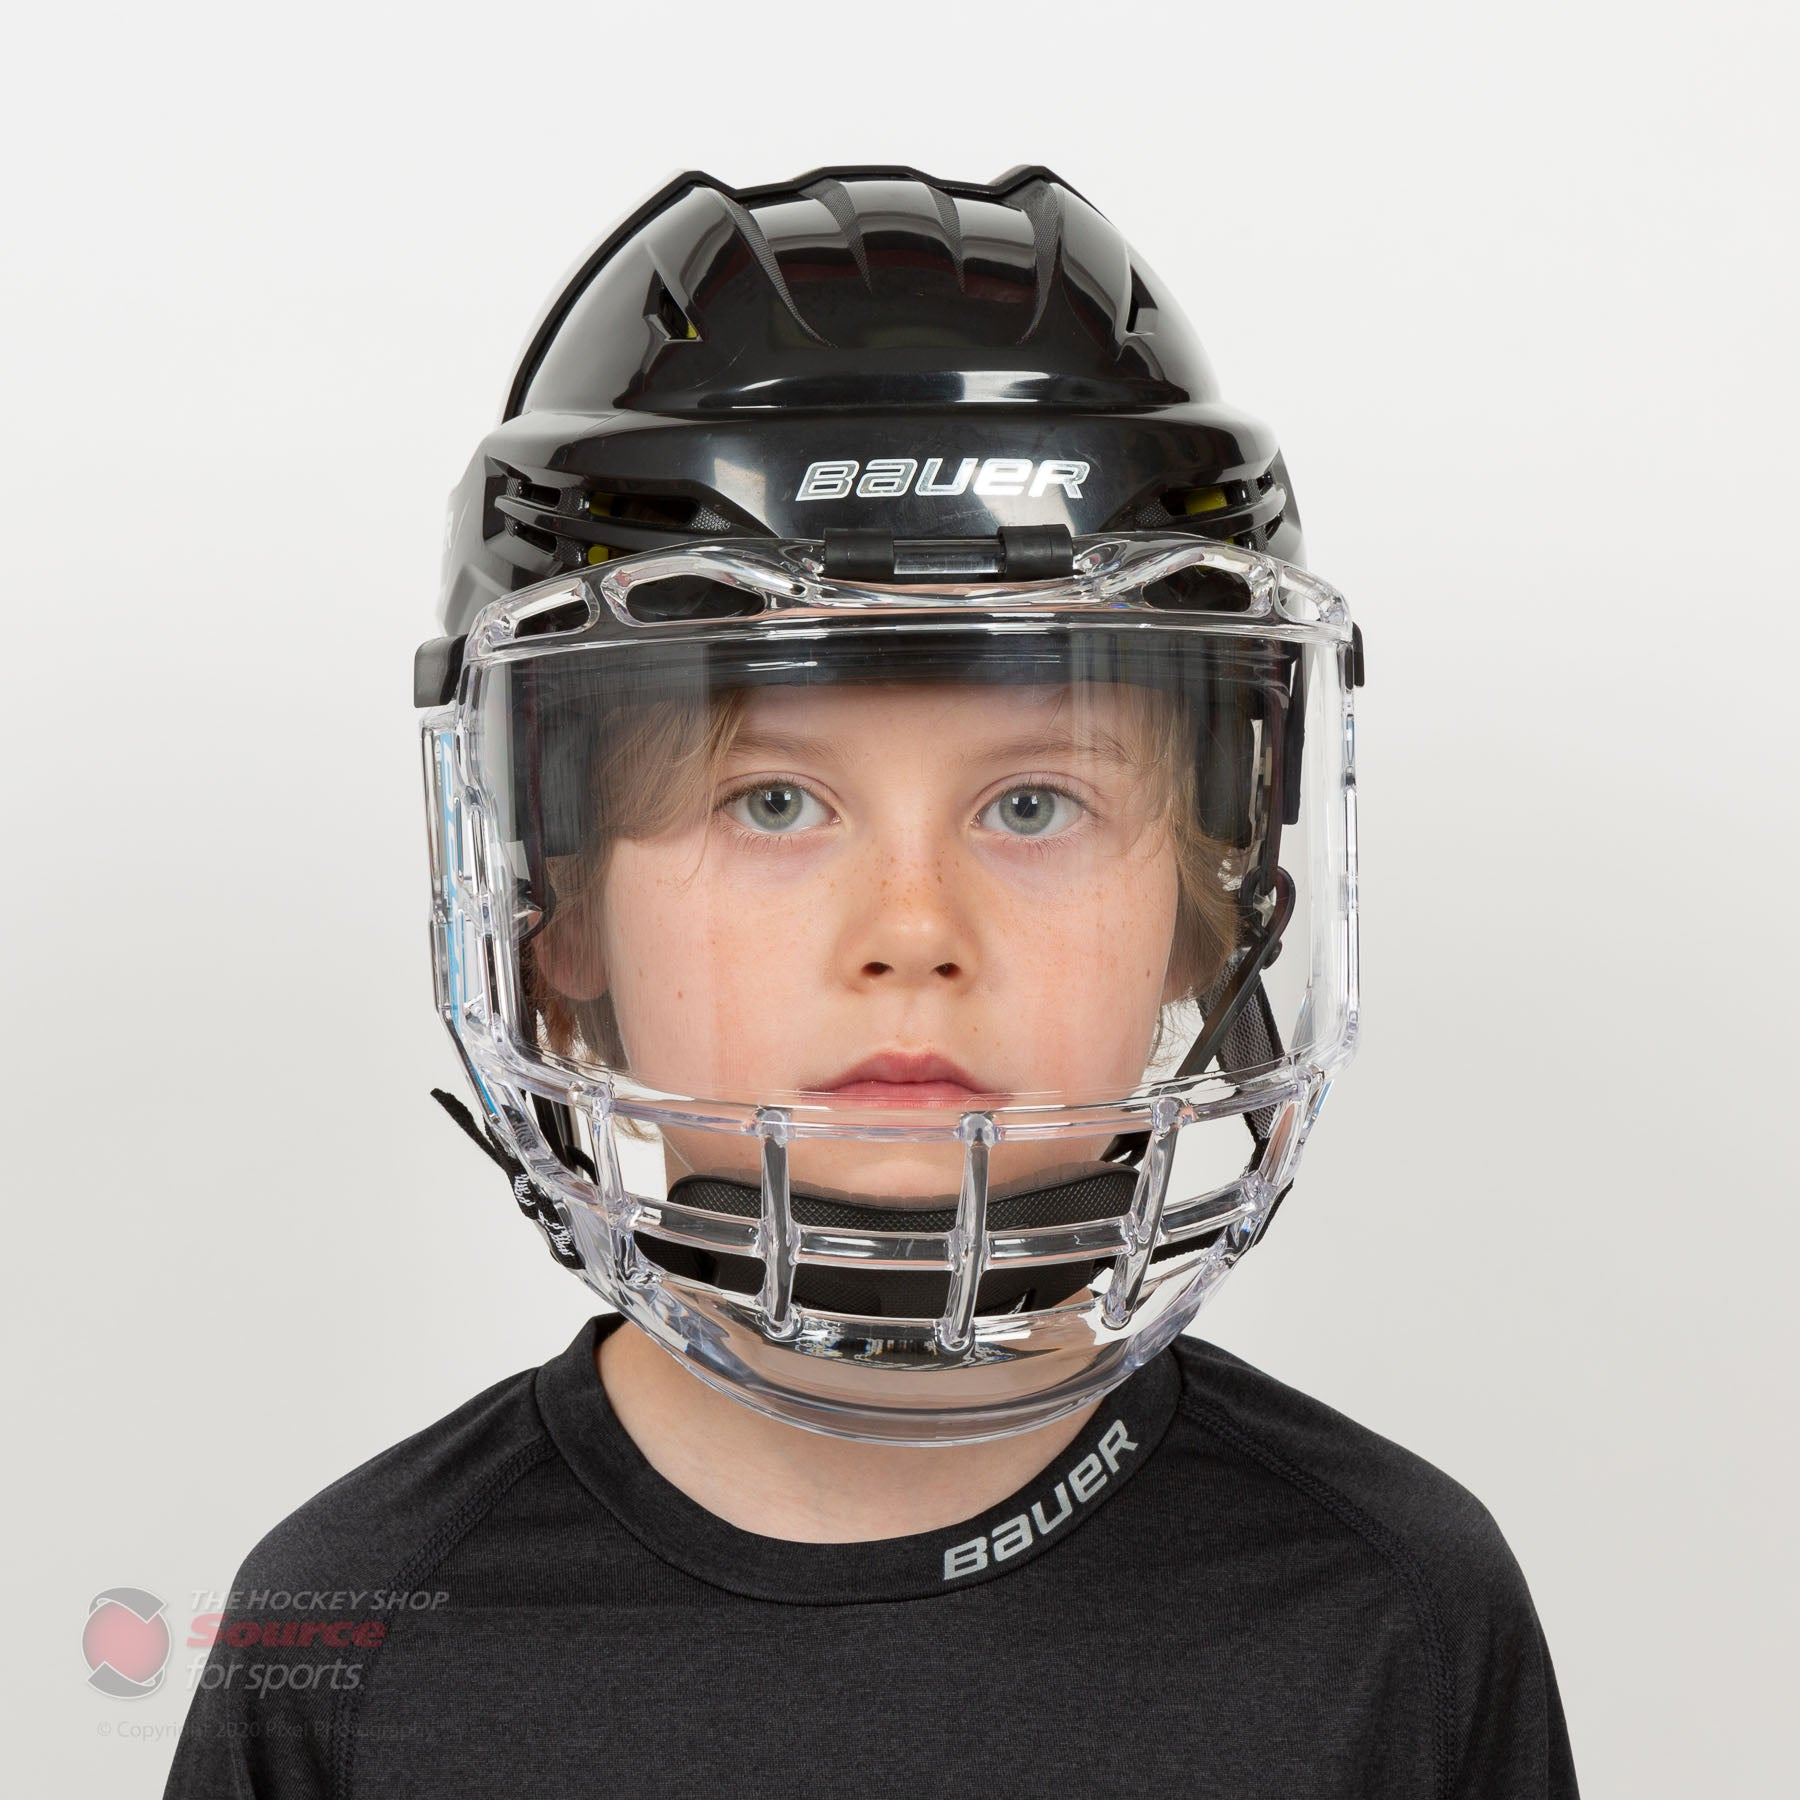 Bauer Concept 3 Senior Hockey Full Face Shield The Hockey Shop Source For Sports